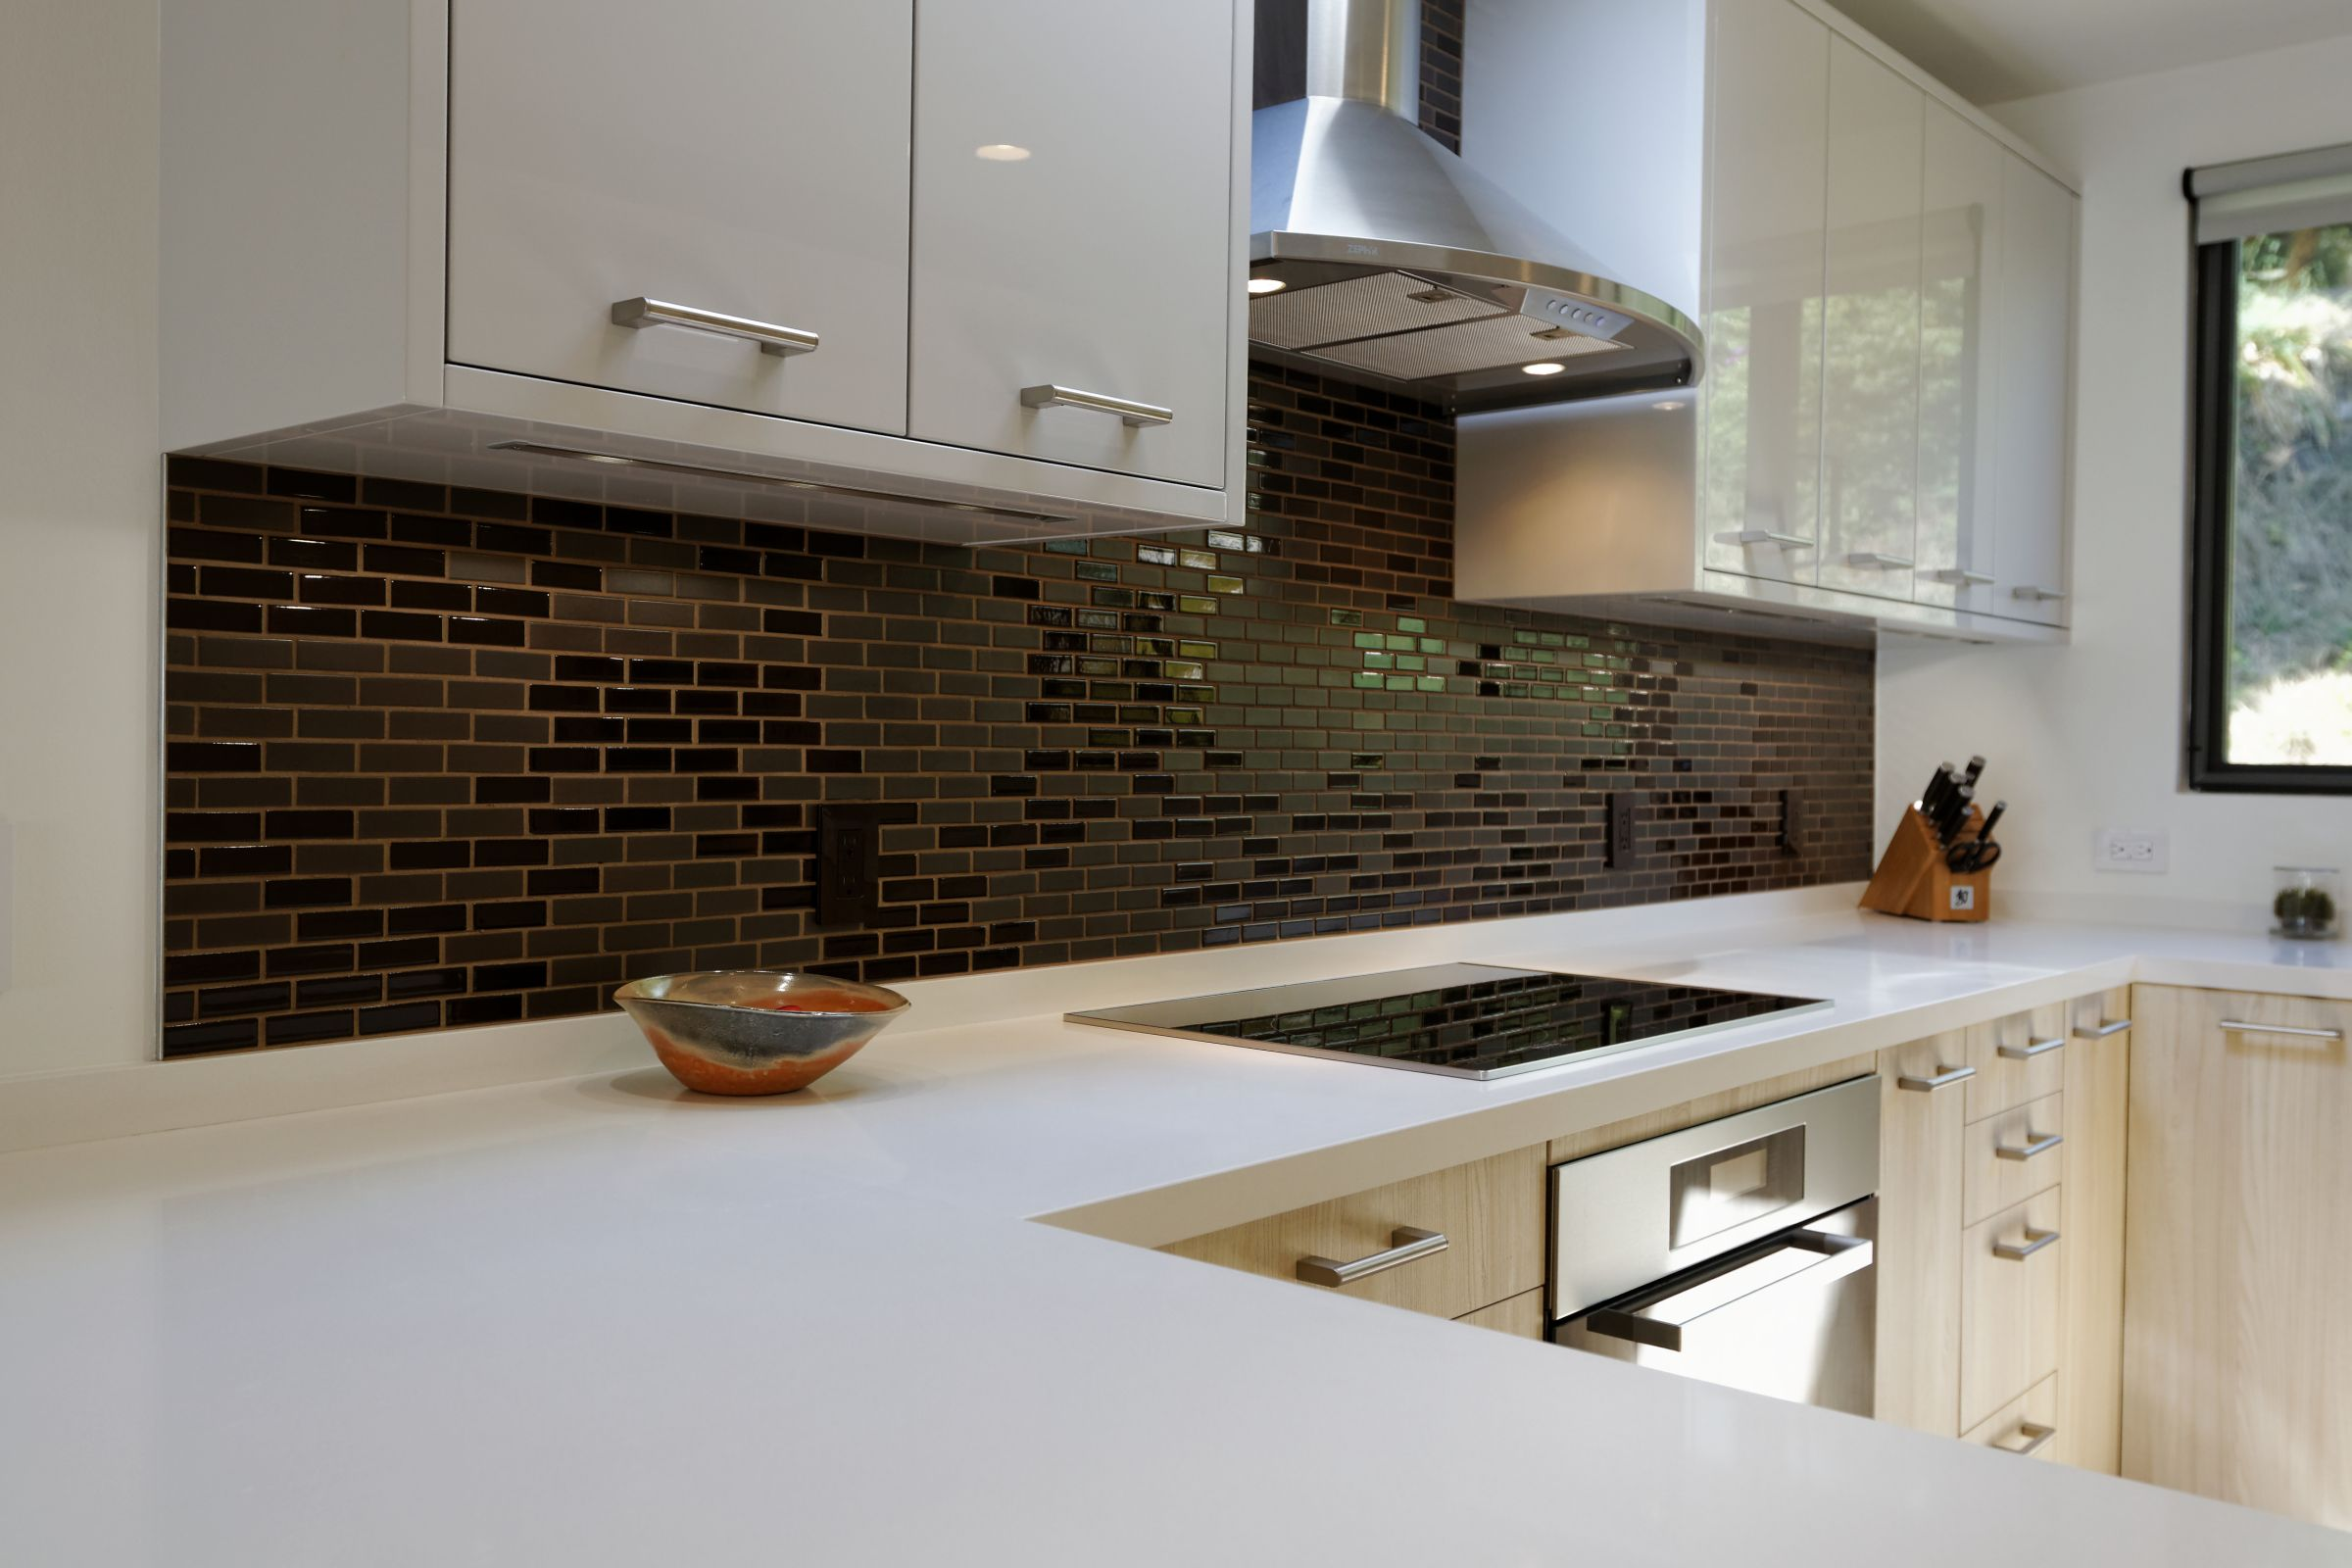 Typically the separate oven is more accurate that the ones integrated into free-standing ranges,